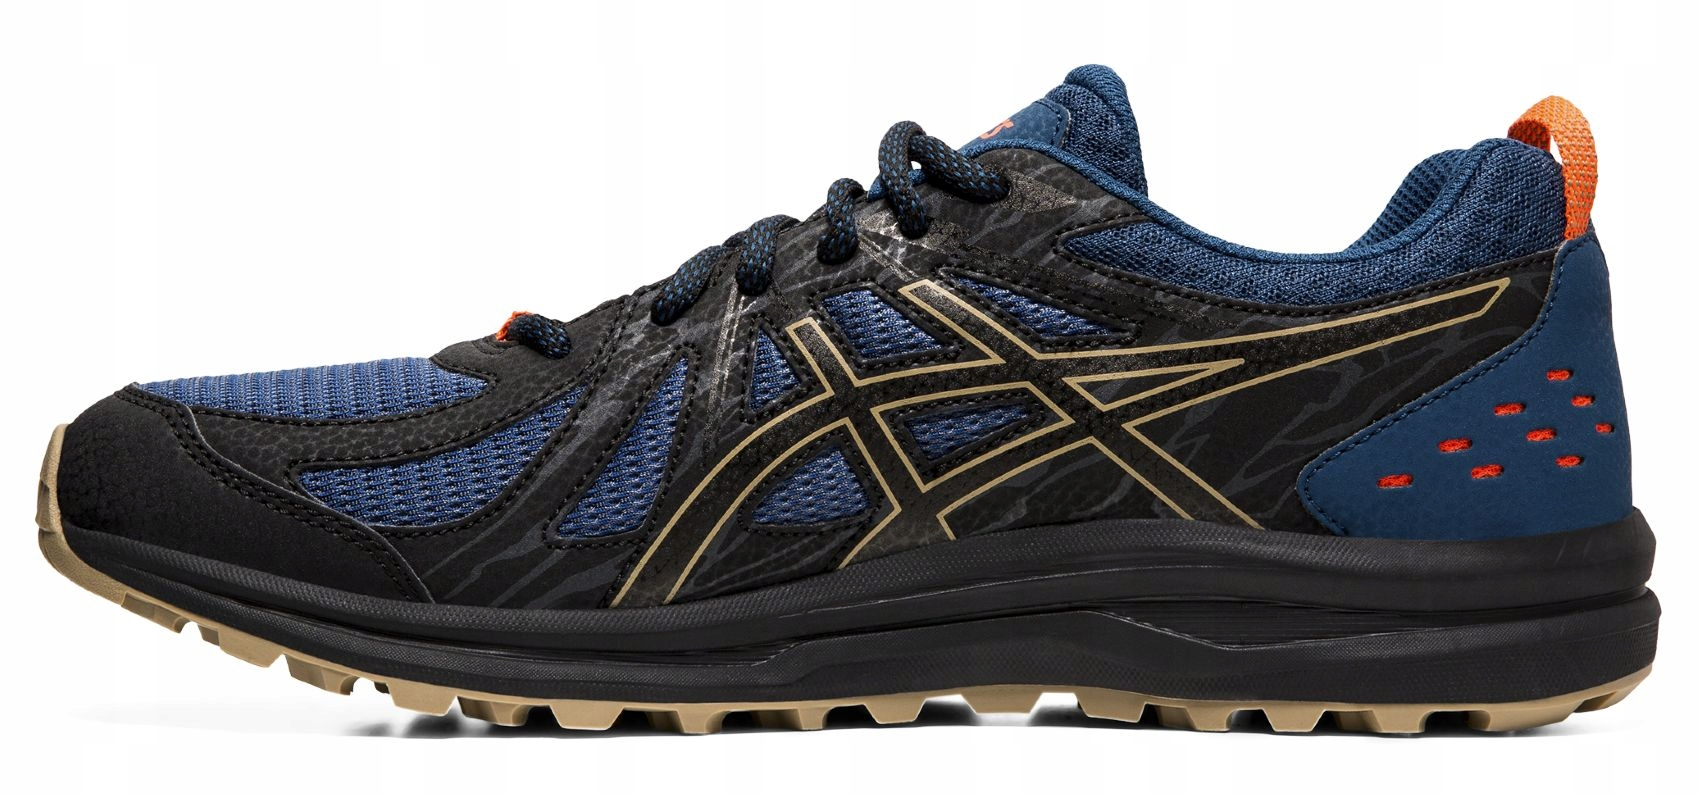 MĘSKIE BUTY ASICS FREQUENT 1011A034 403 43,5 8122165716